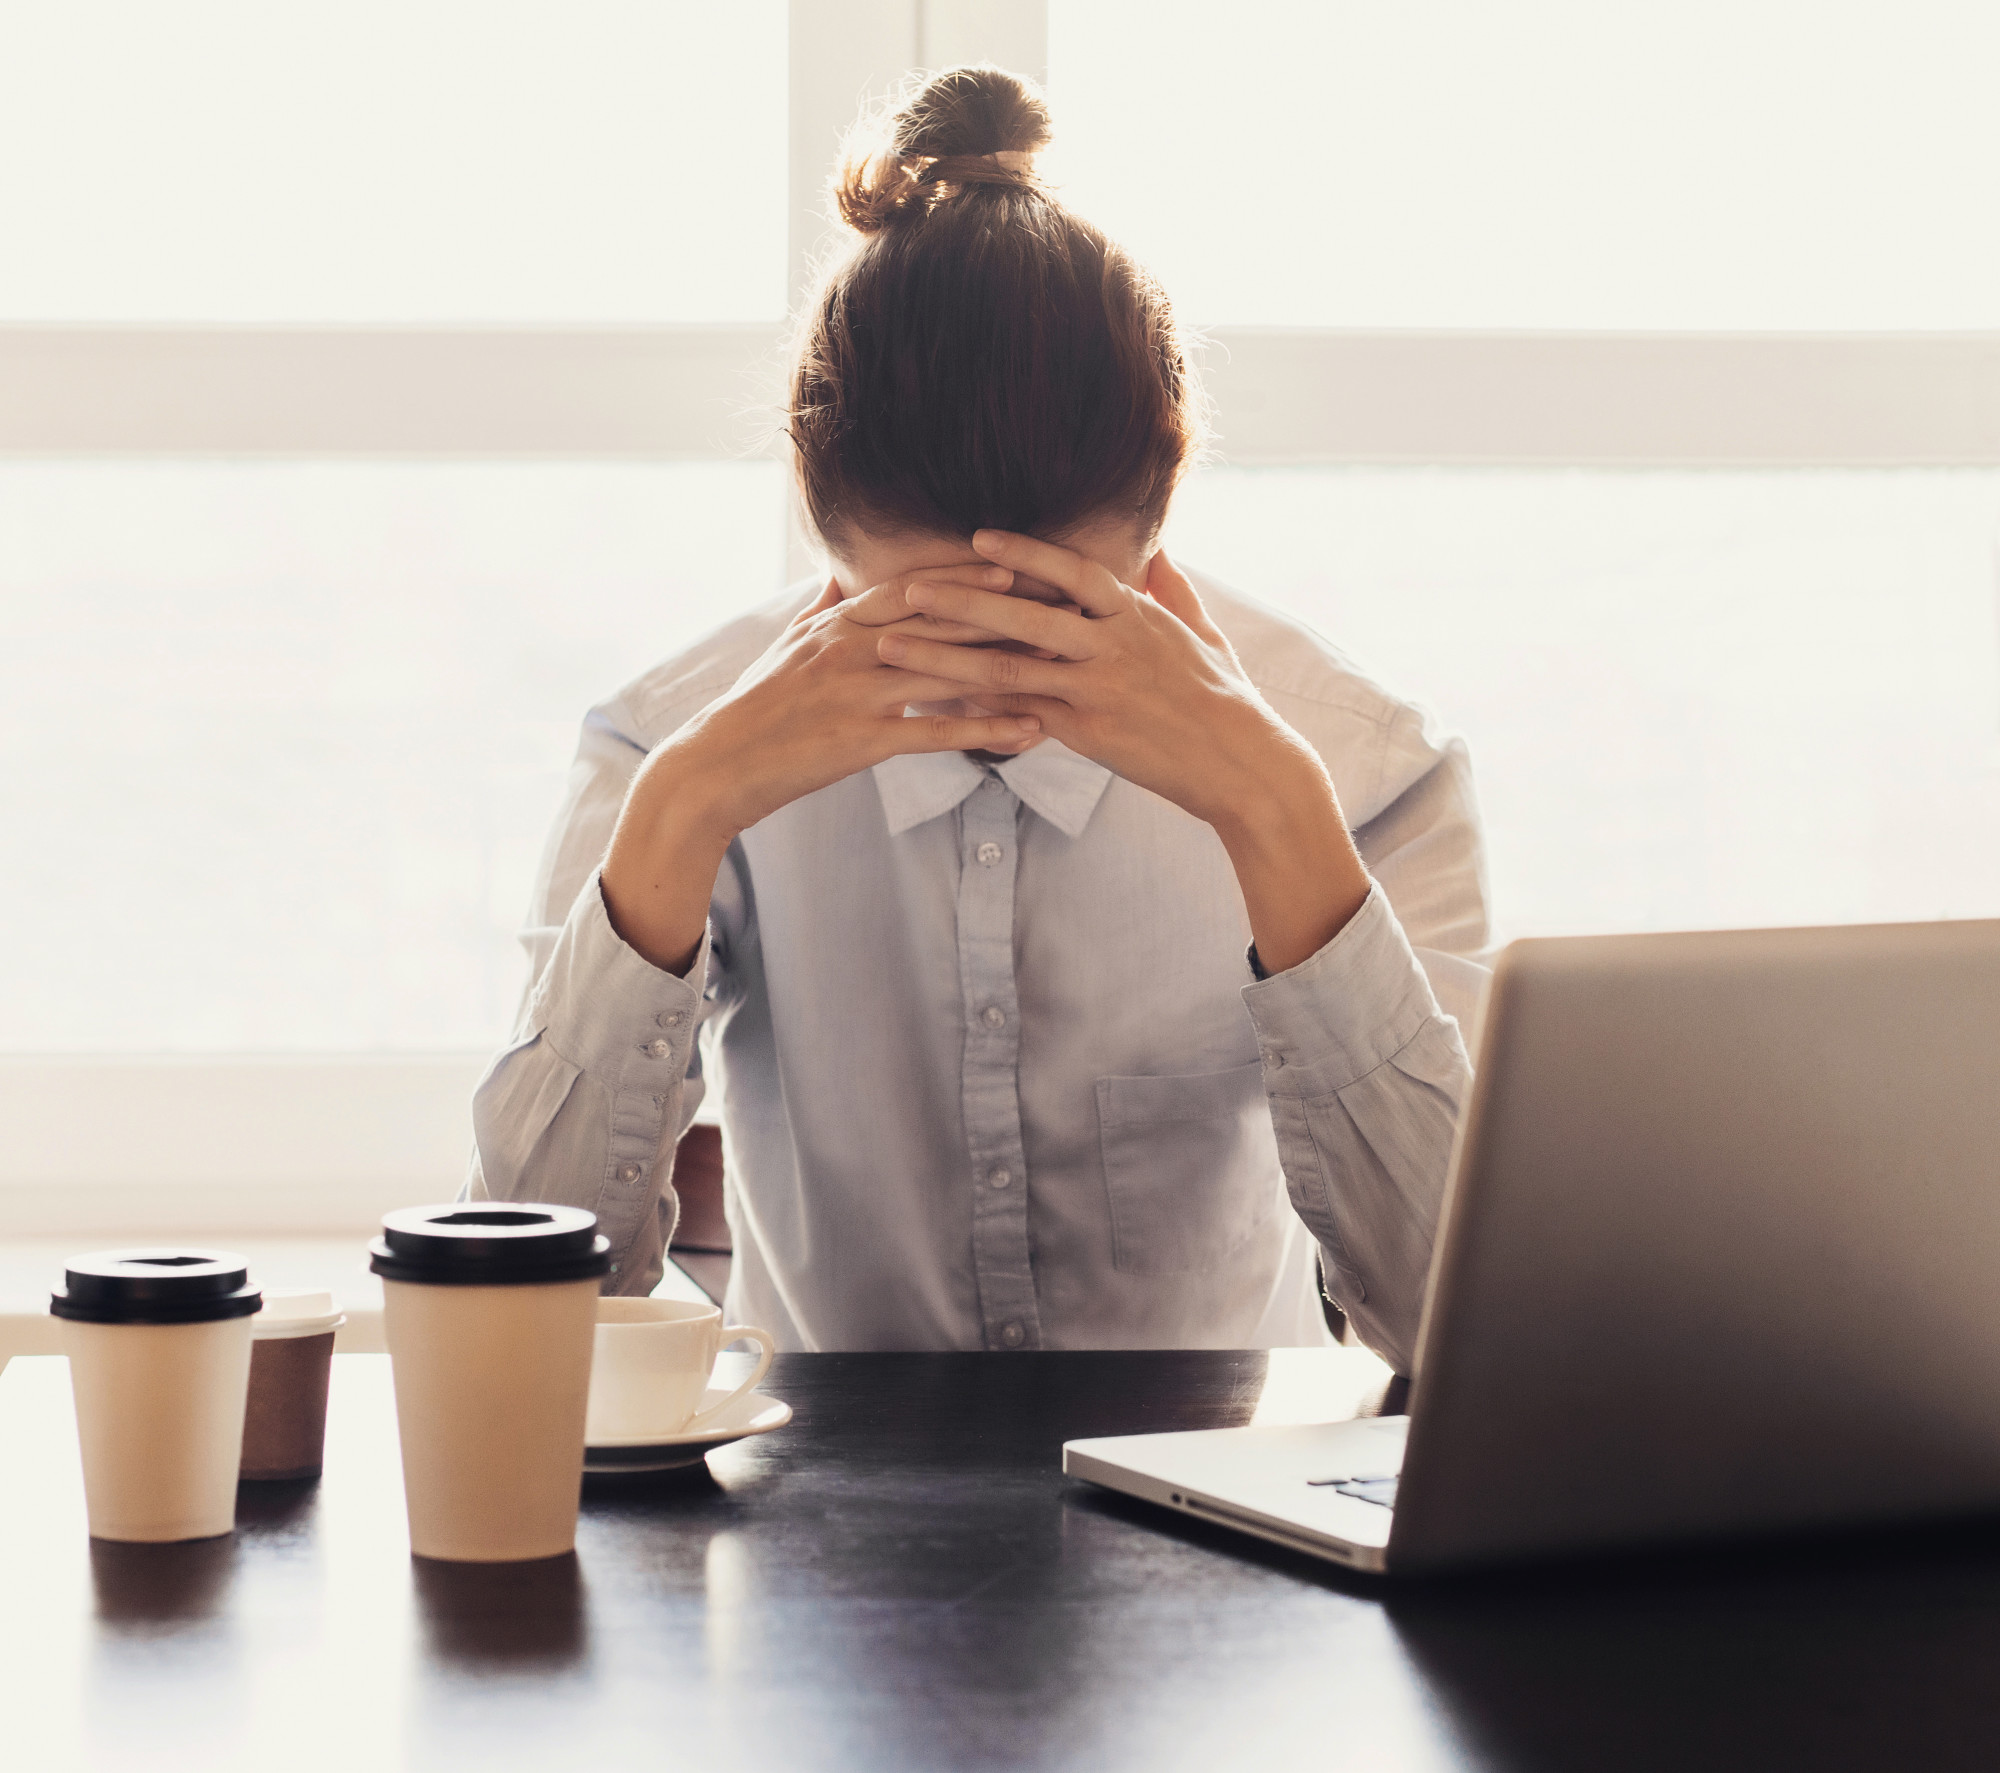 How to Fix Fatigue When Caffeine Doesn't Work